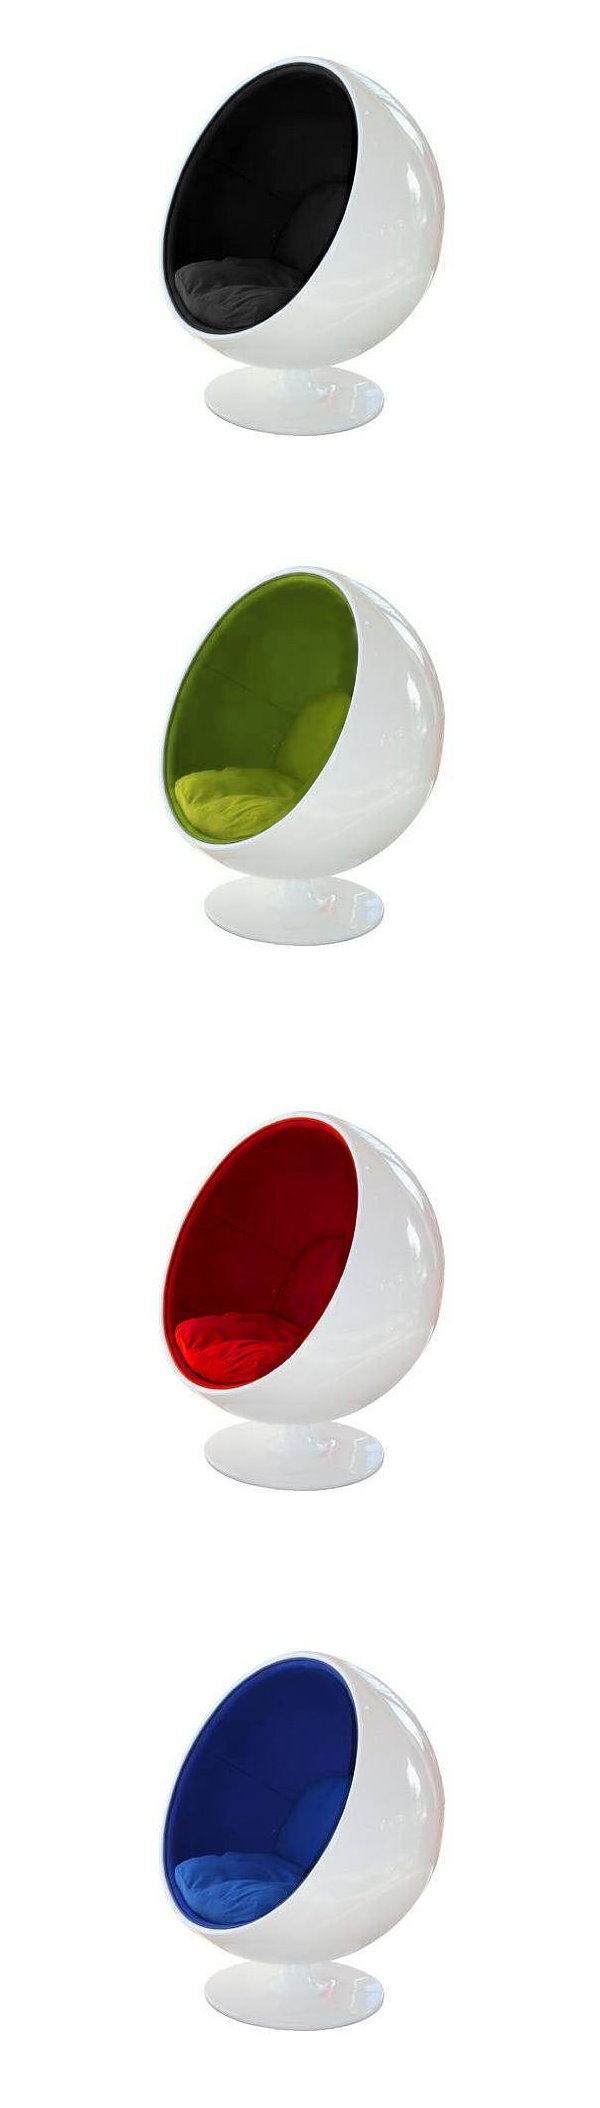 ball chair by eero aarnio an iconic swivel armchair which became popular during the sixties when even furniture liked to rock and roll